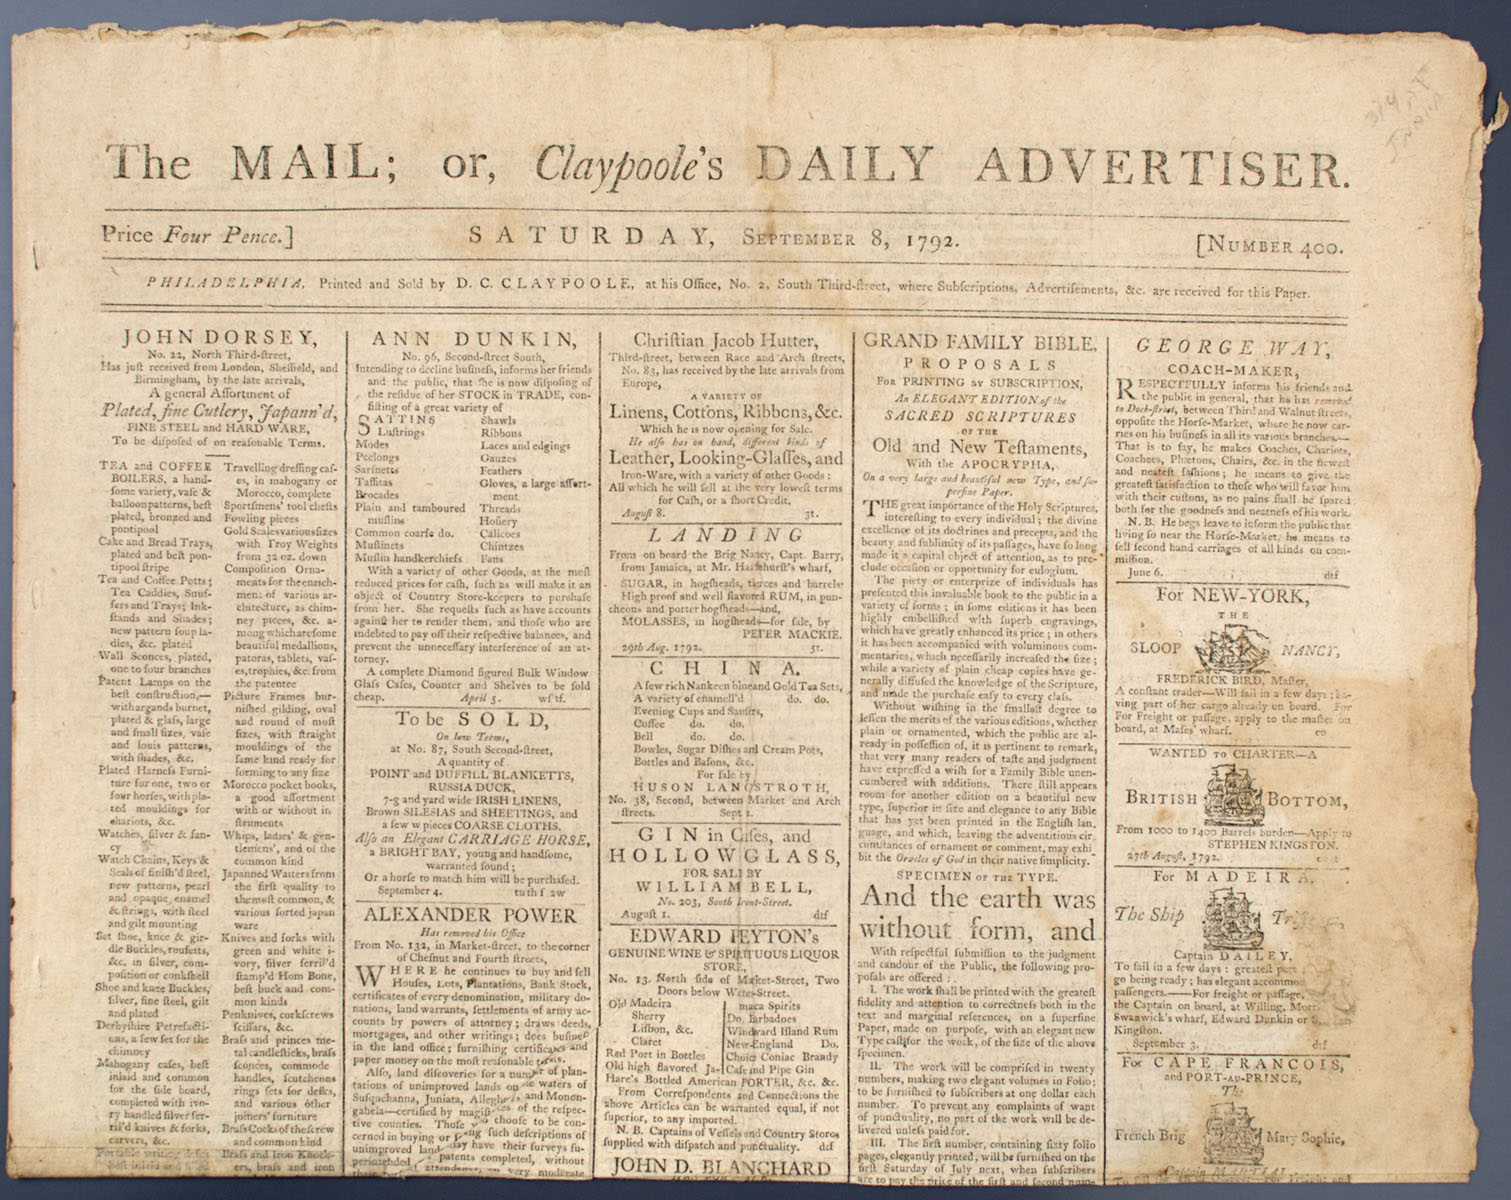 Newspaper, The Mail or Claypoole's Daily Advertiser